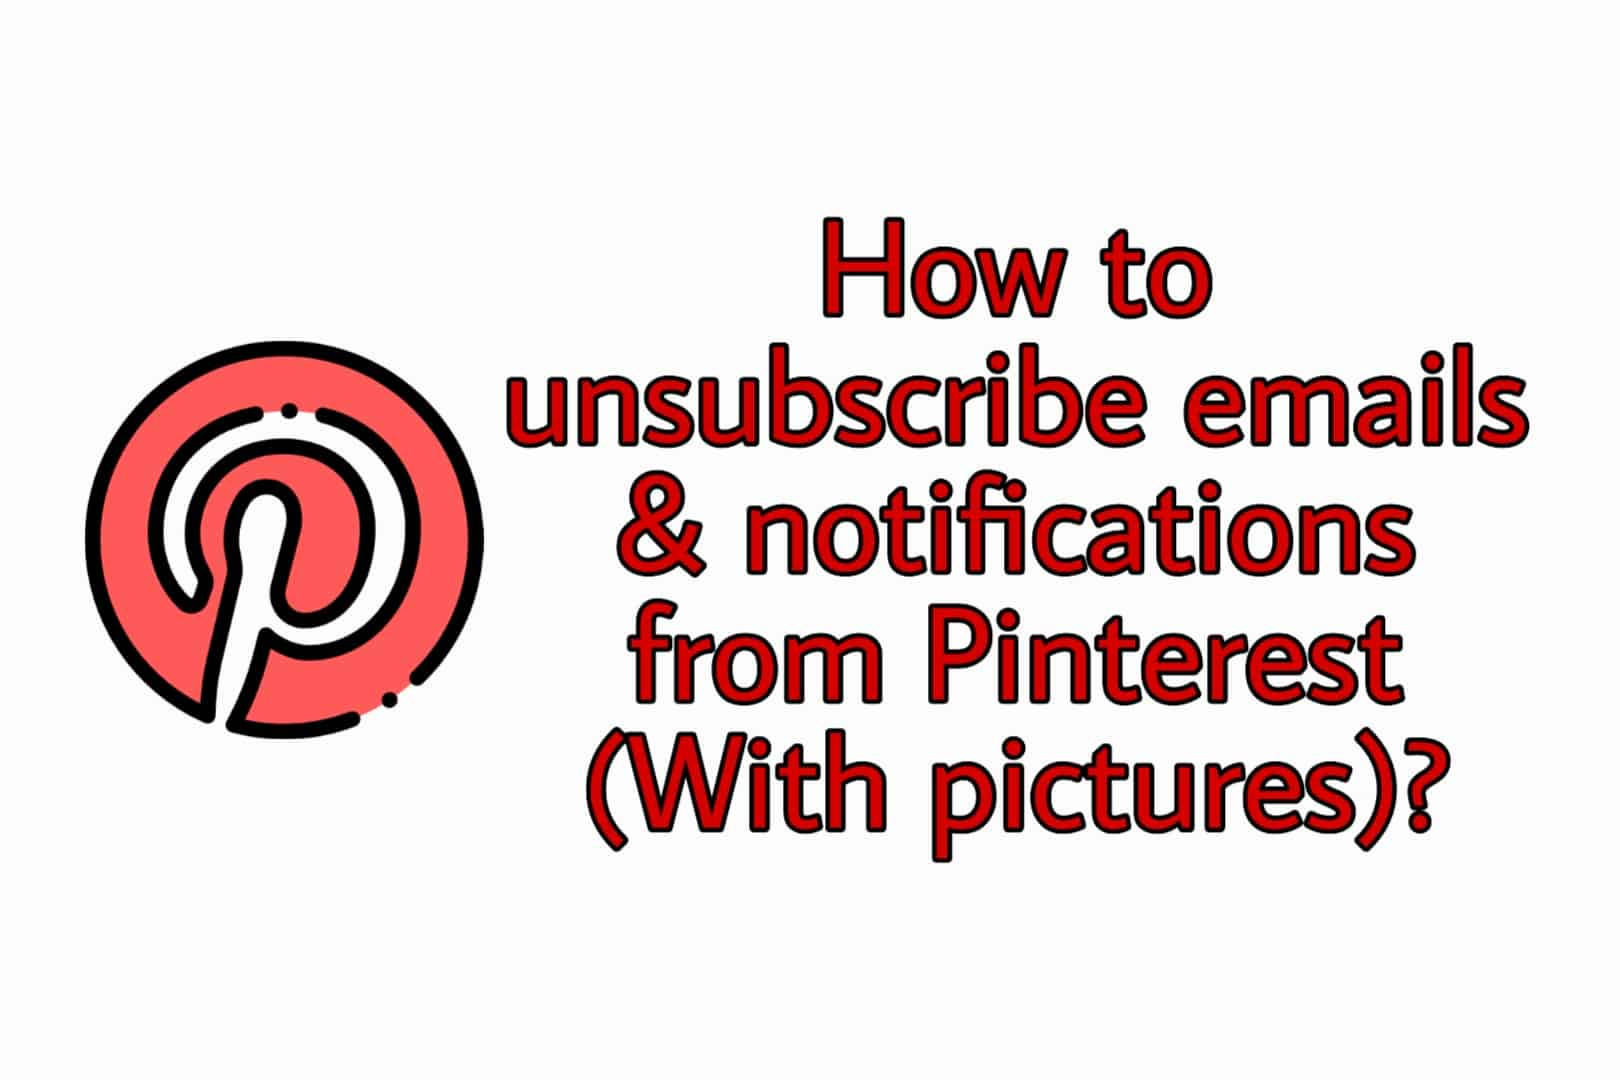 How to unsubscribe emails & notifications from Pinterest (With pictures)?